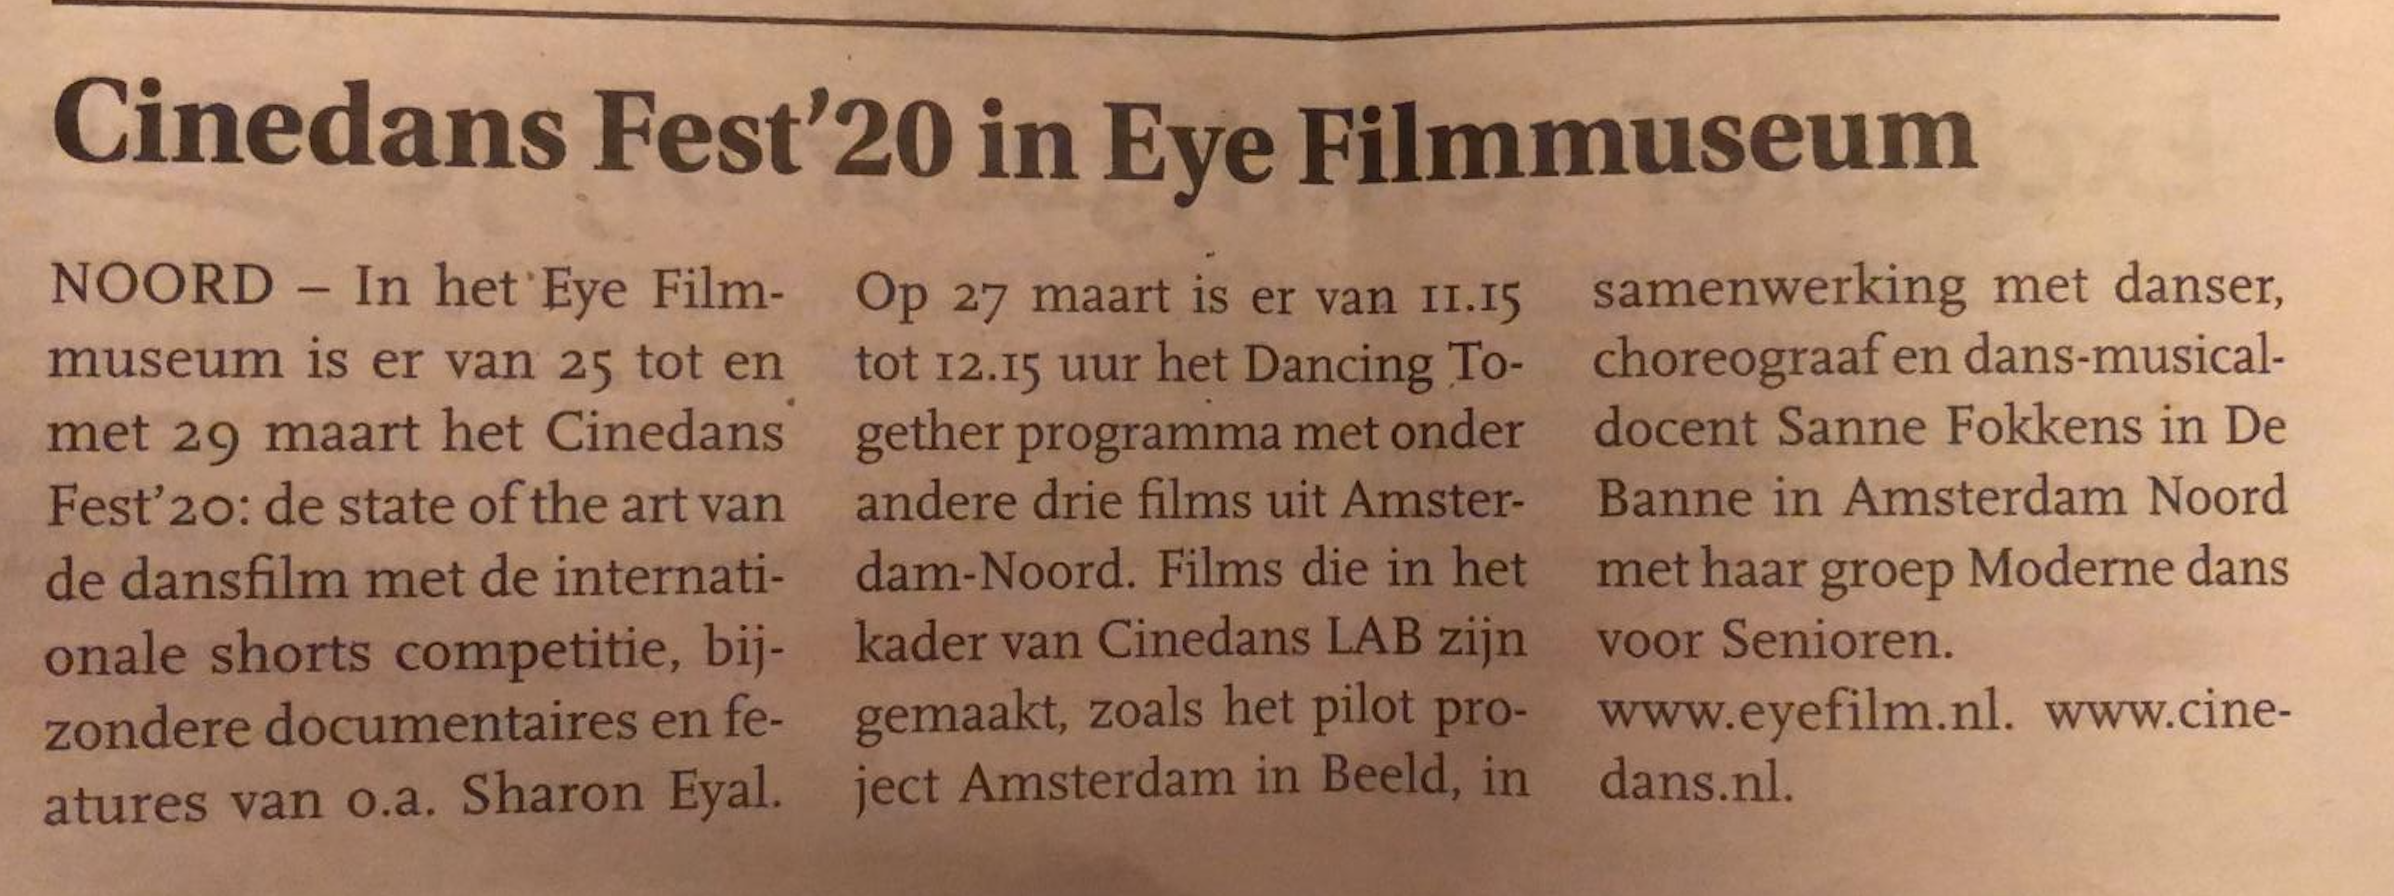 SF en Cinedans in de krant